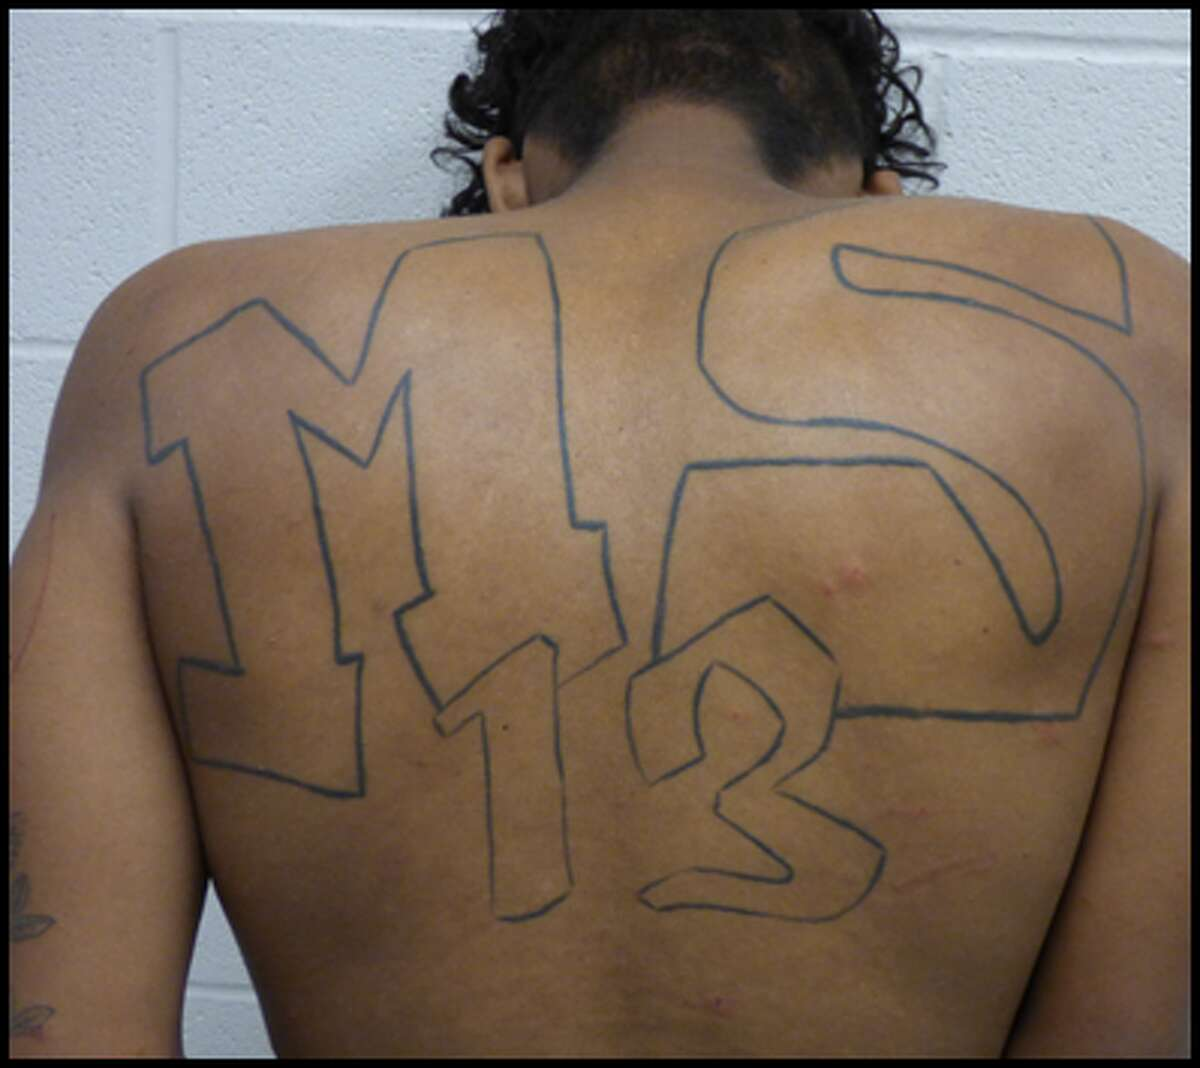 MS-13 gang members are encountered more than any other gang members illegally crossing the Texas-Mexico border in the Rio Grande Valley. Source:2018 National Drug Threat Assessment; page 115